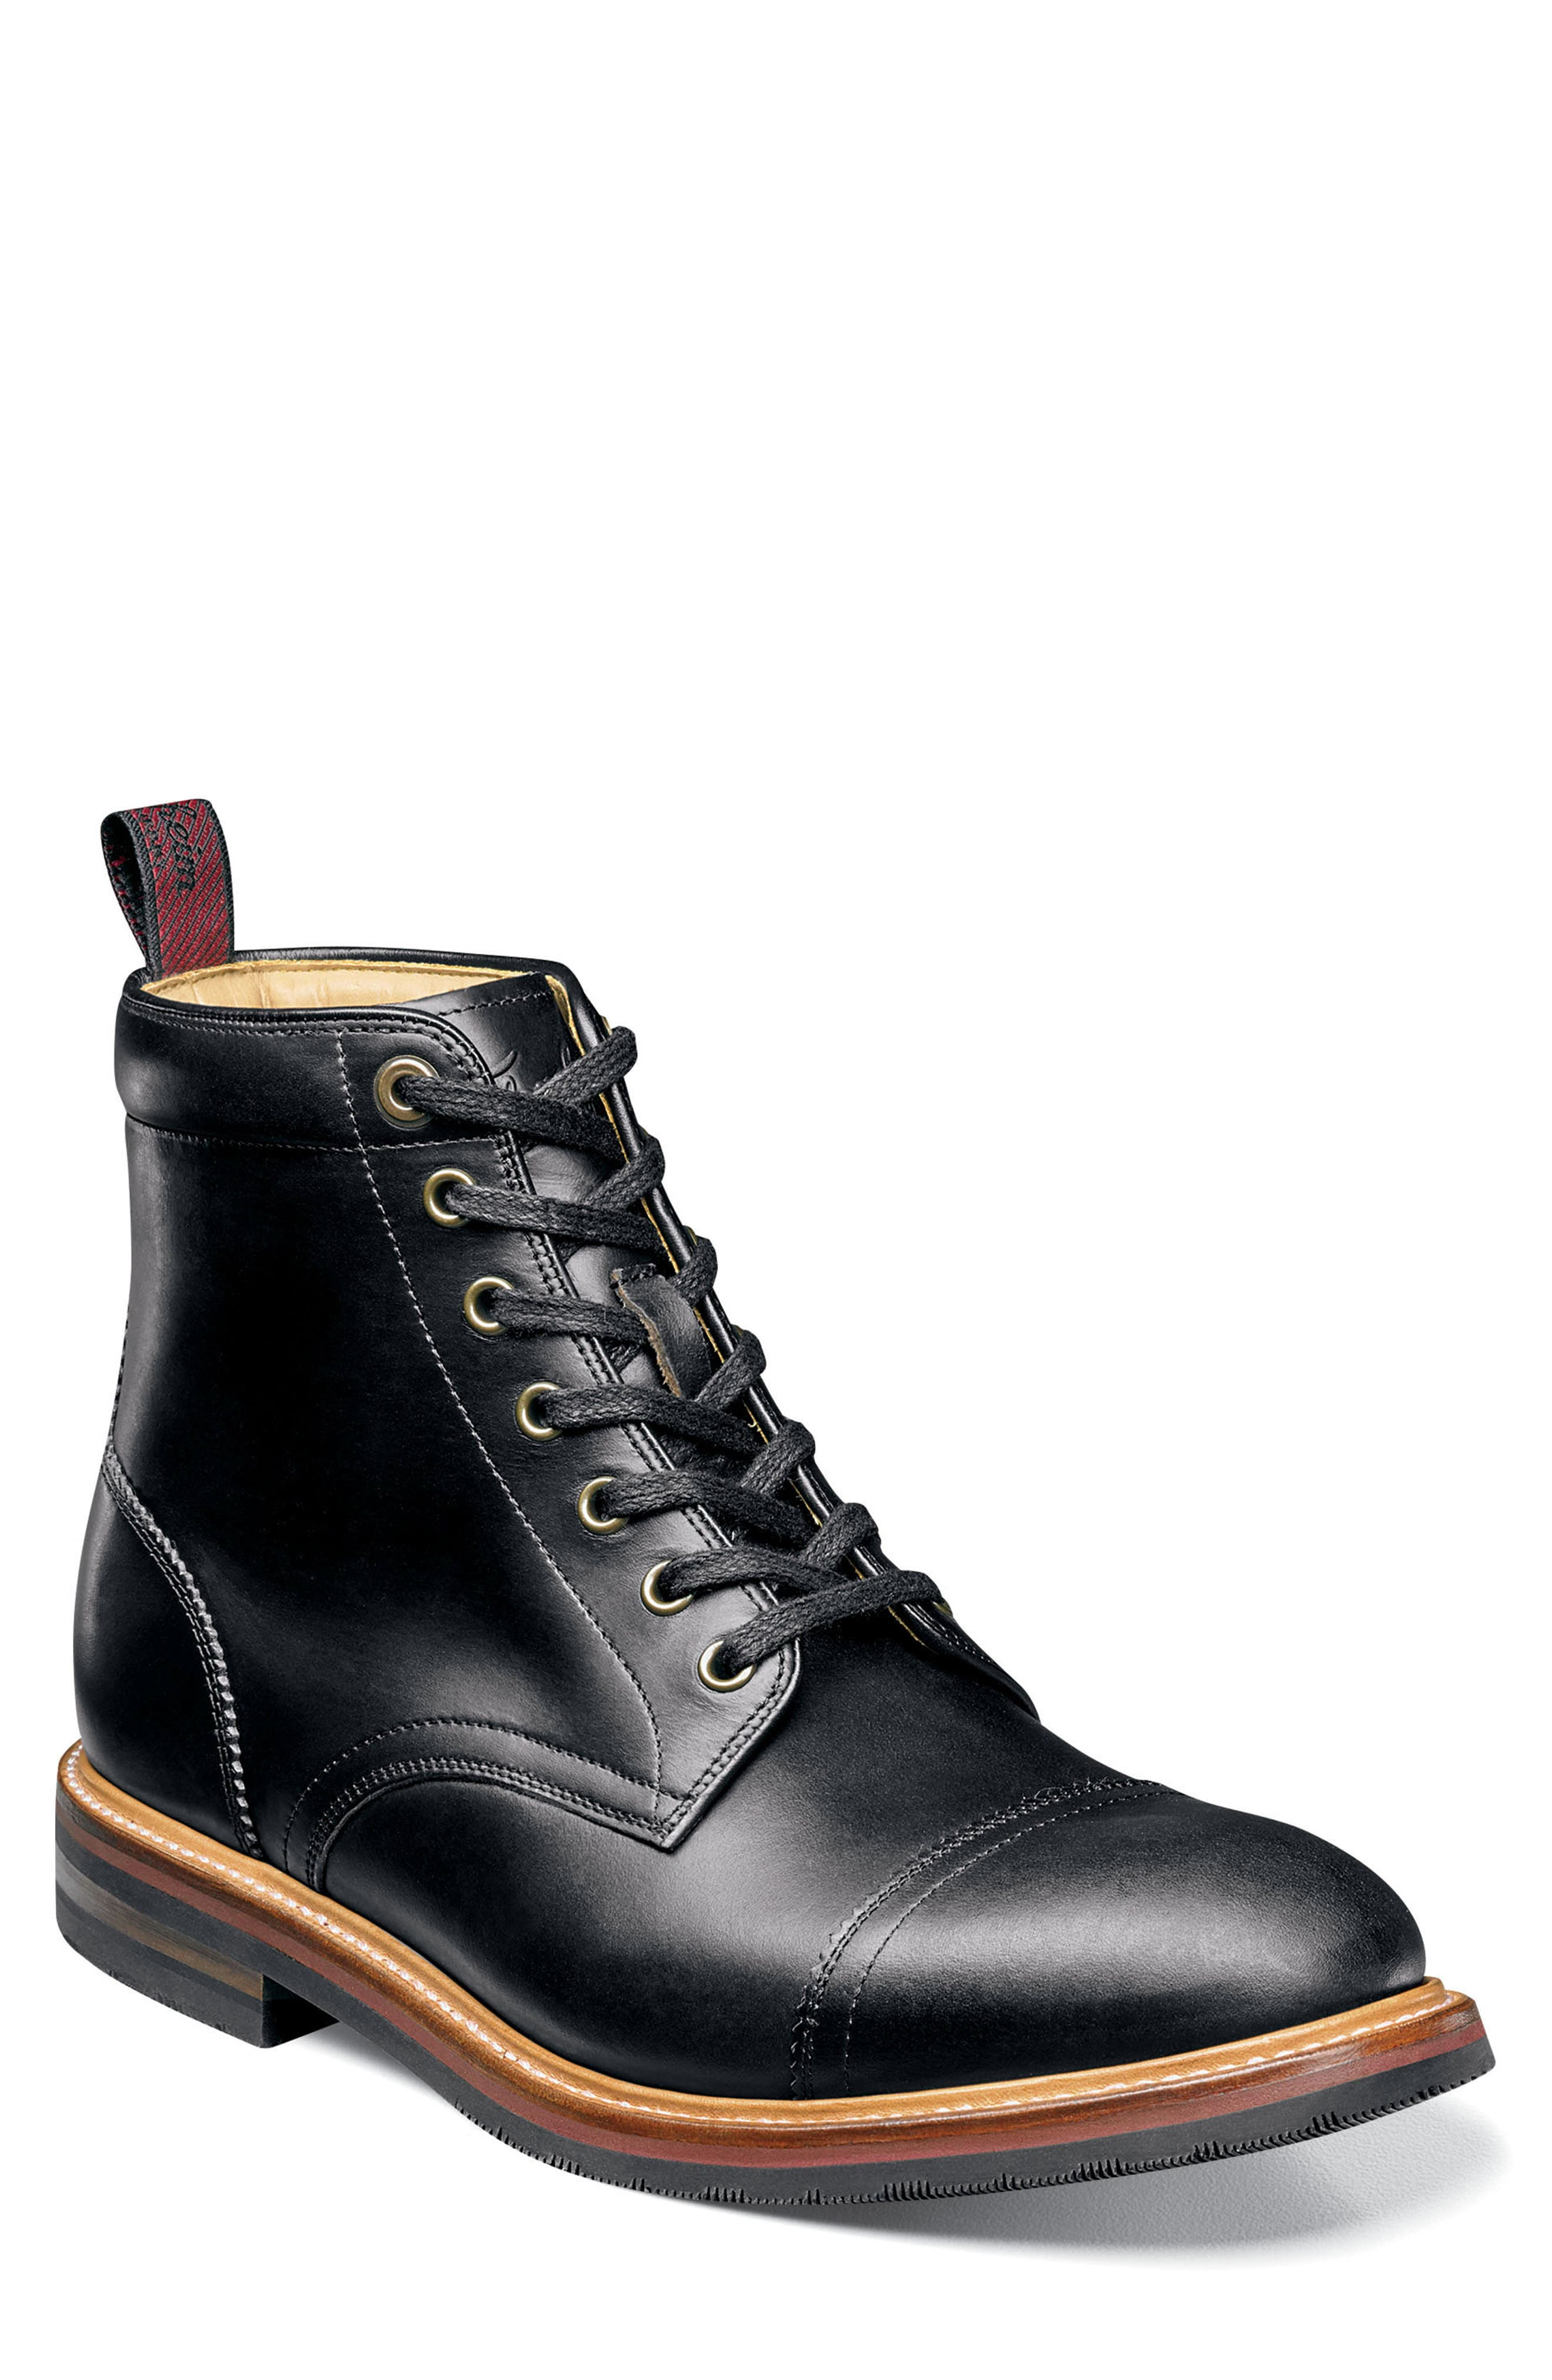 Founcry Cap Toe Boot,                         Main,                         color, BLACK LEATHER